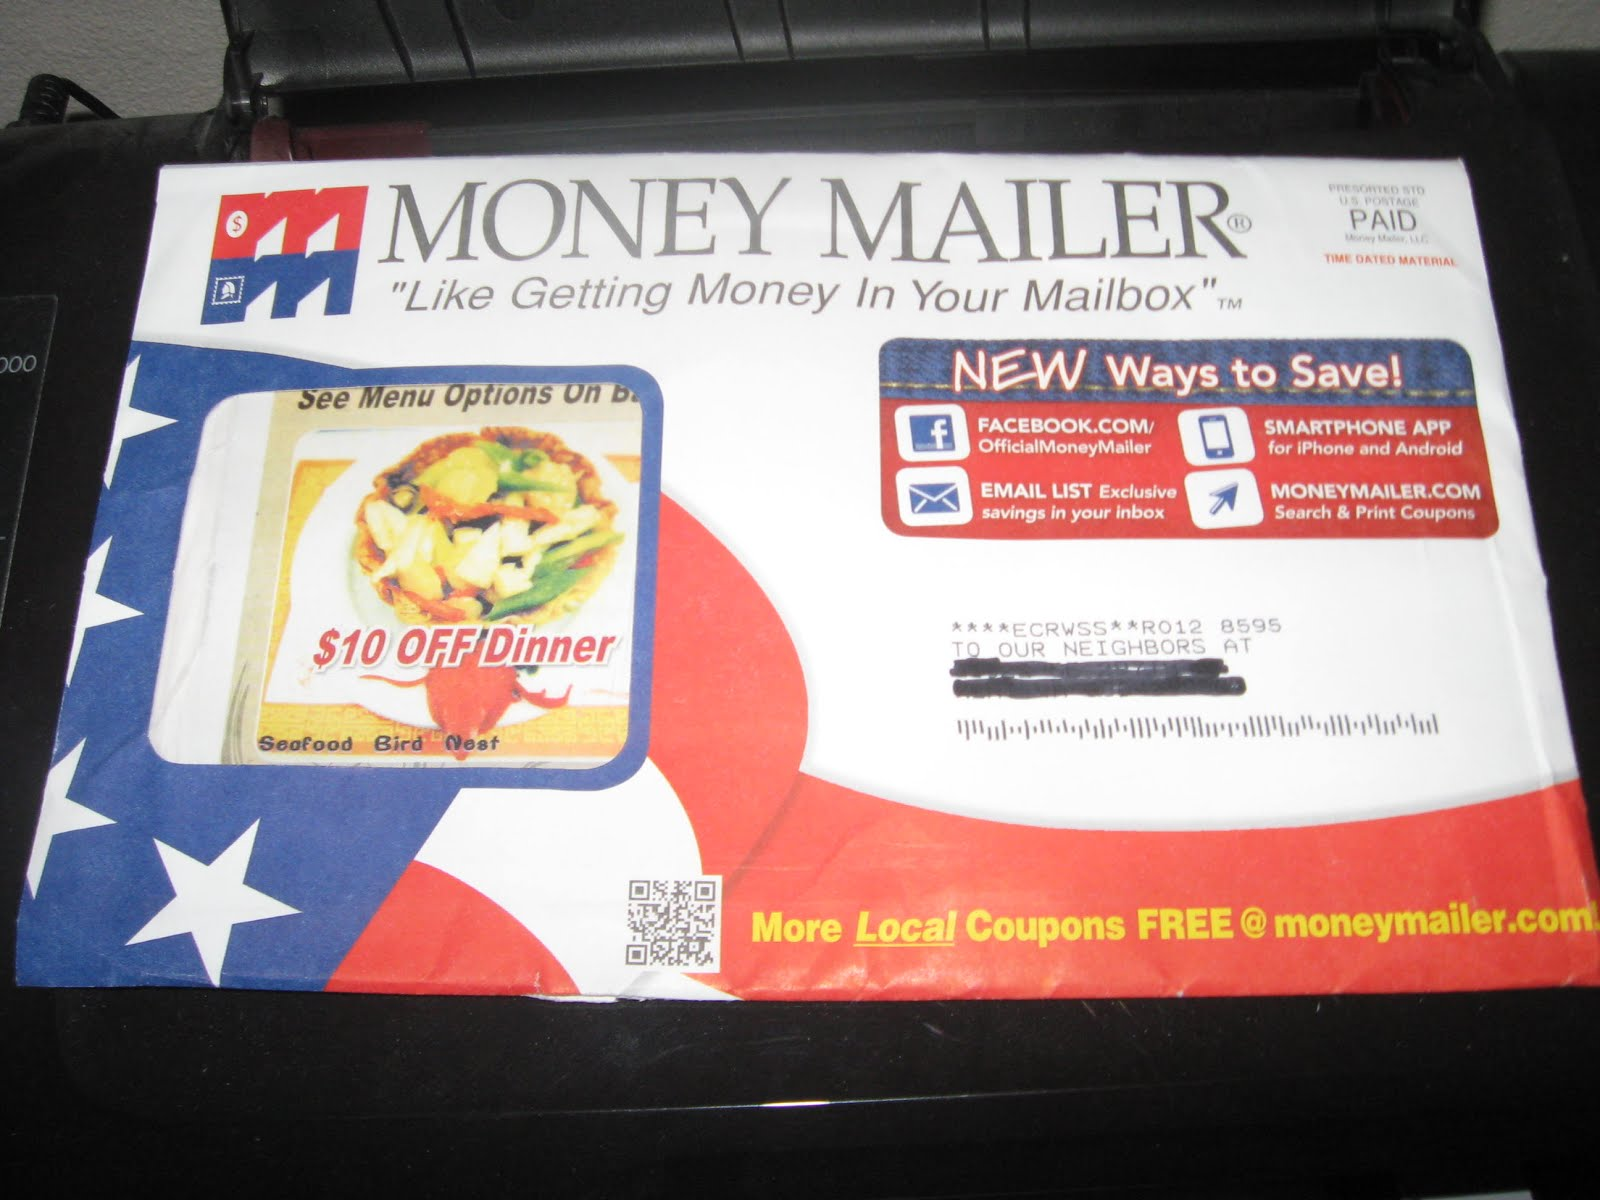 Coupons via postal mail